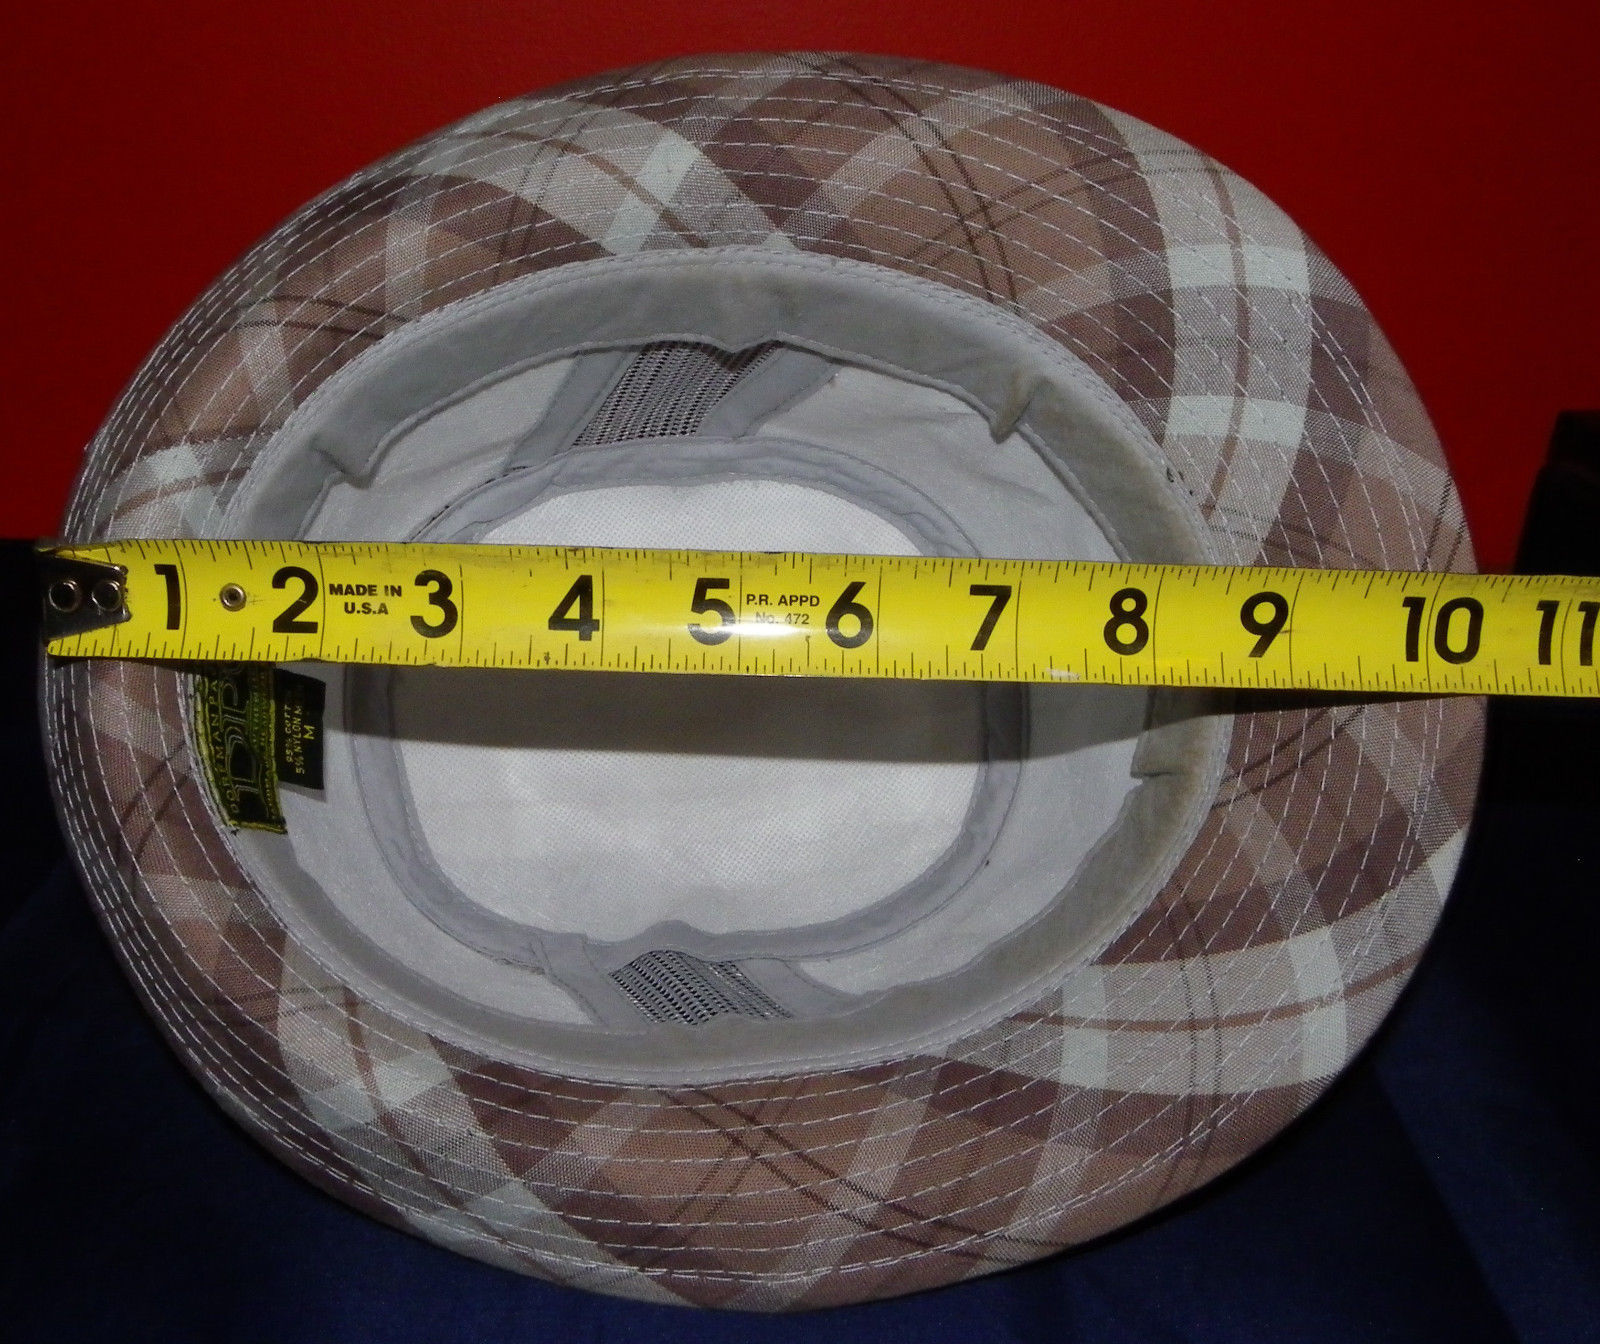 Dorfman Pacific Authentic Handmade Headwear Size M Warm Plaid Fedora Trilby image 12